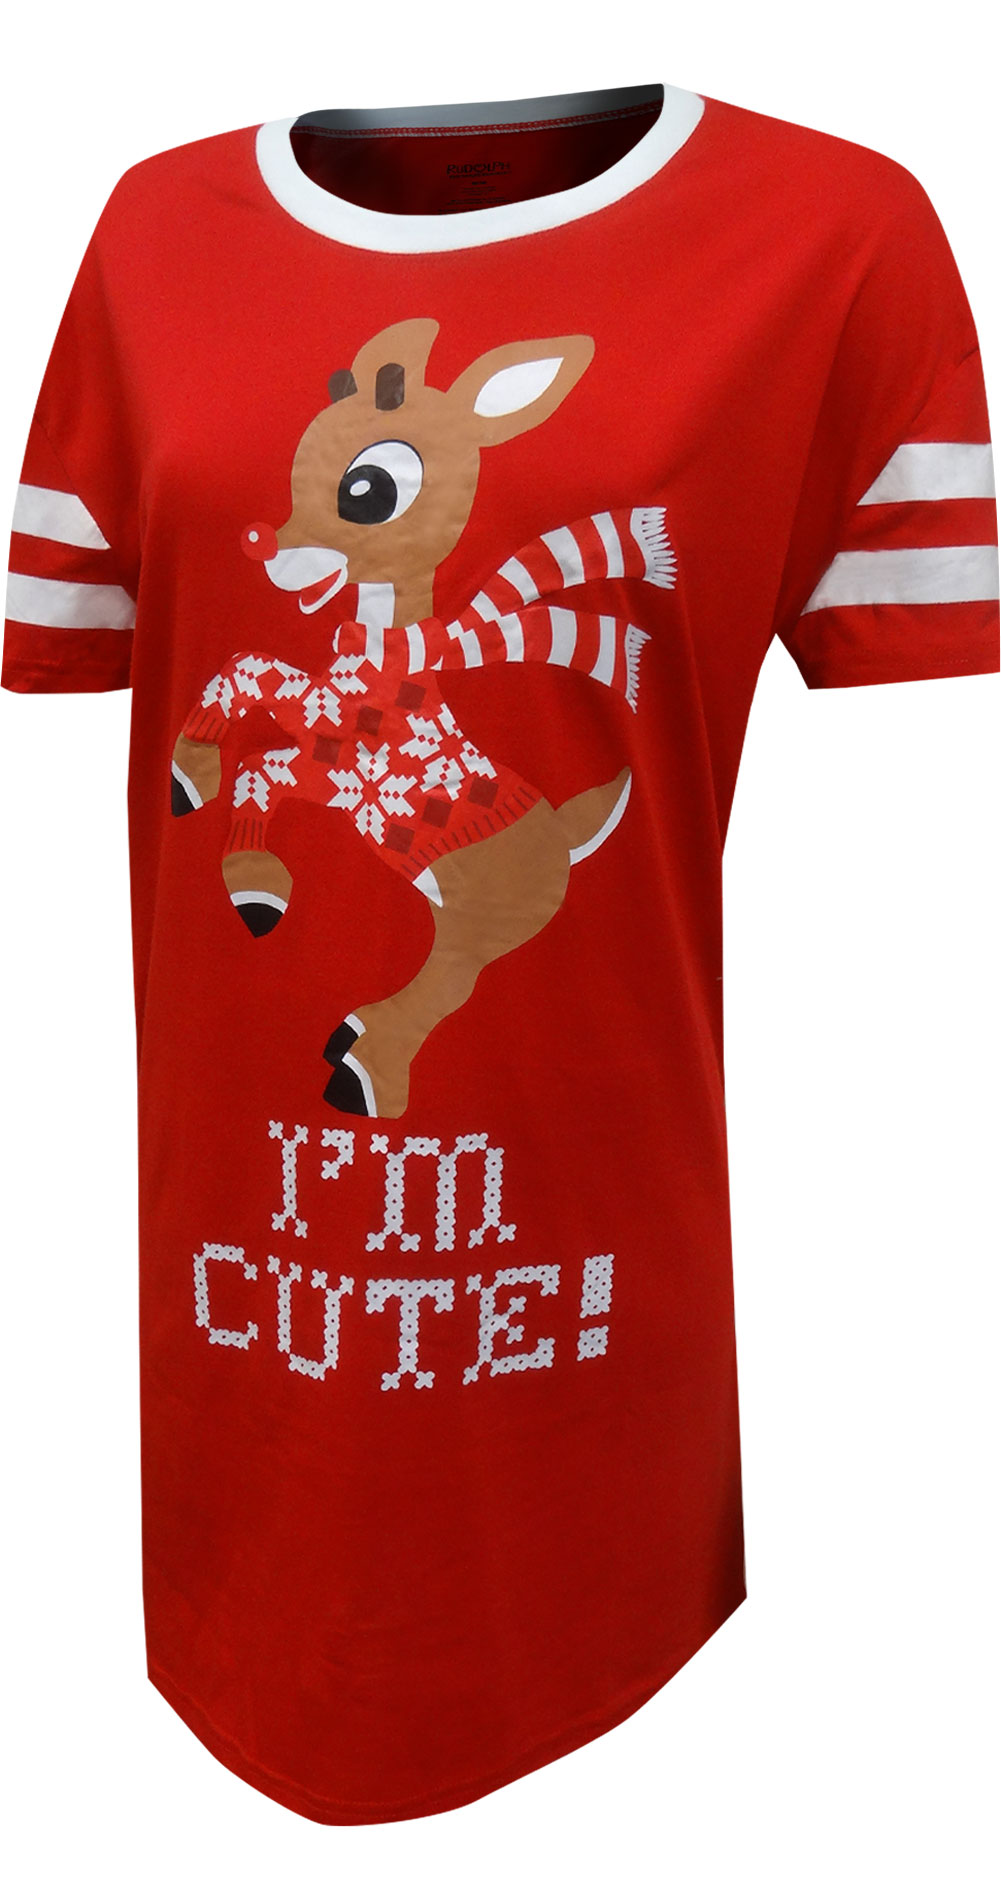 Image of I'm Cute Rudolph The Red Nosed Reindeer Nightshirt for Women